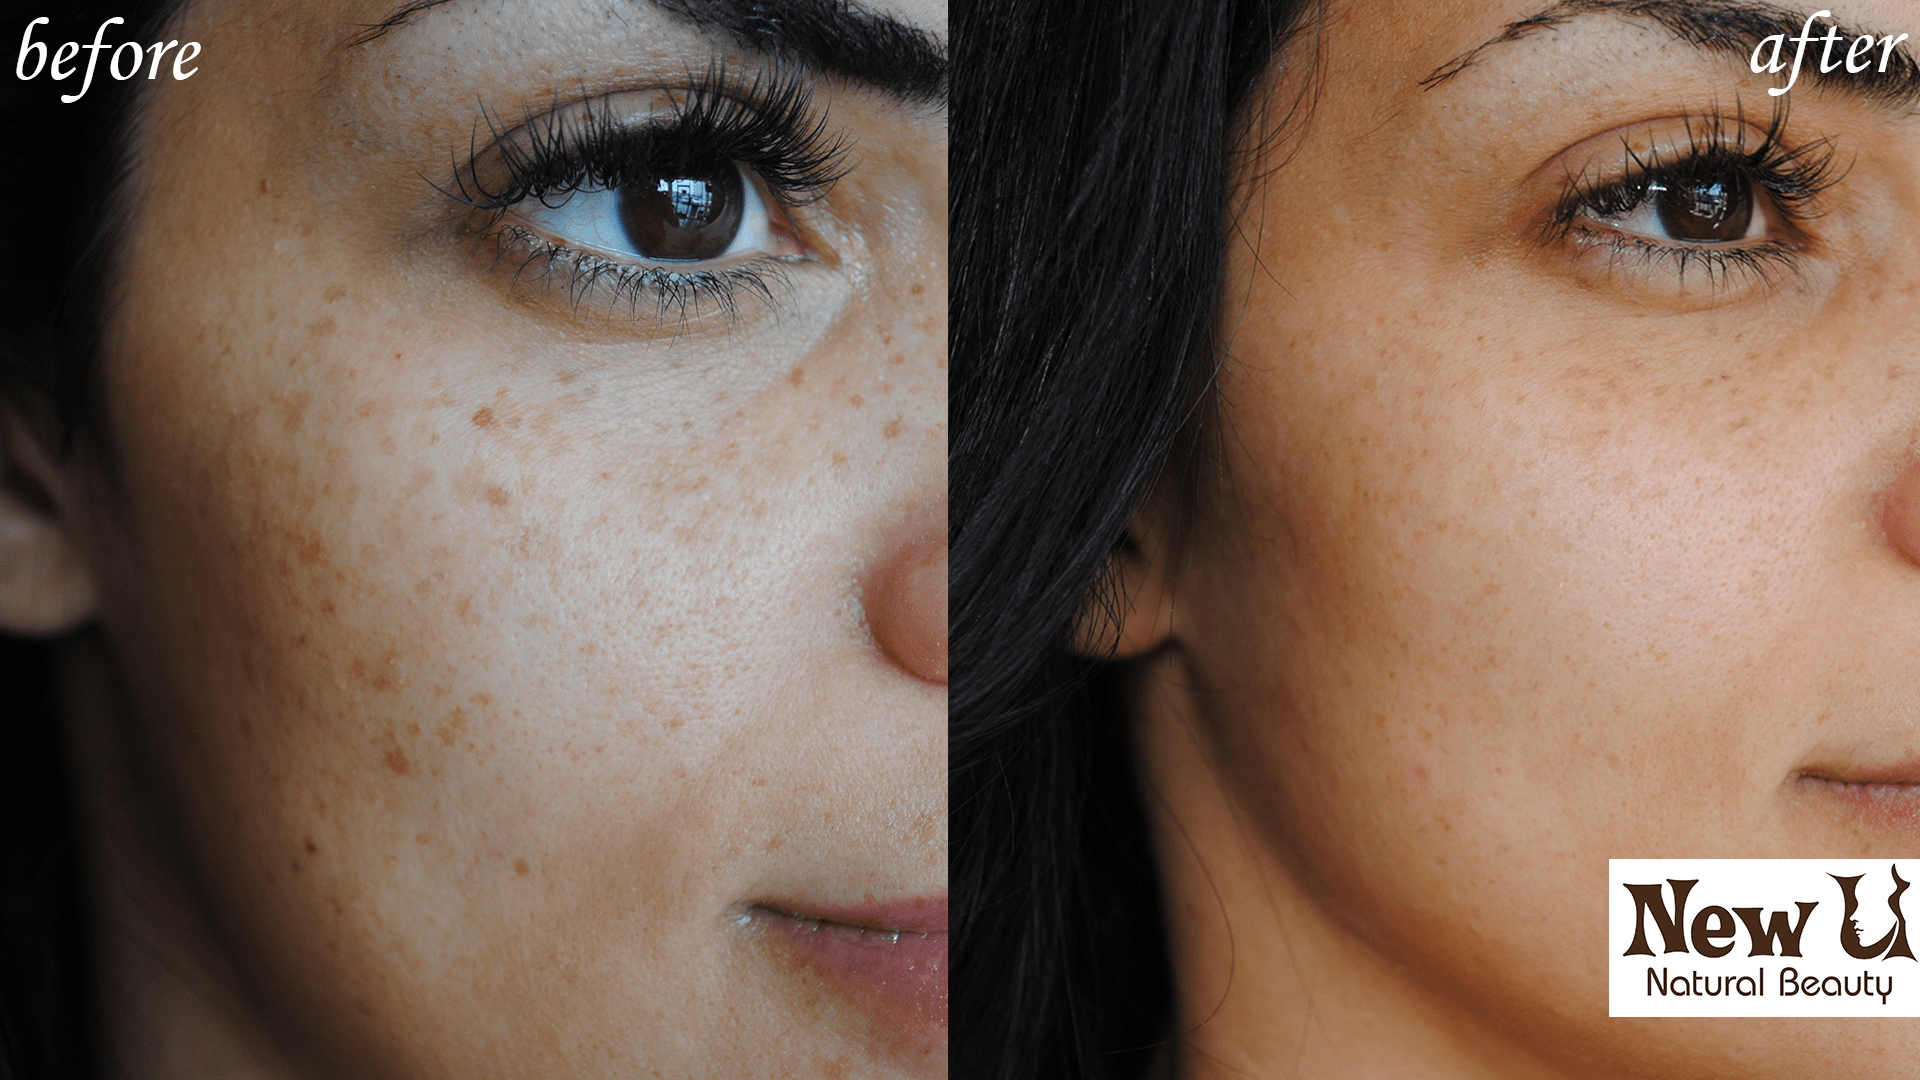 Skin Pigmentation 3 Las Vegas Before & After